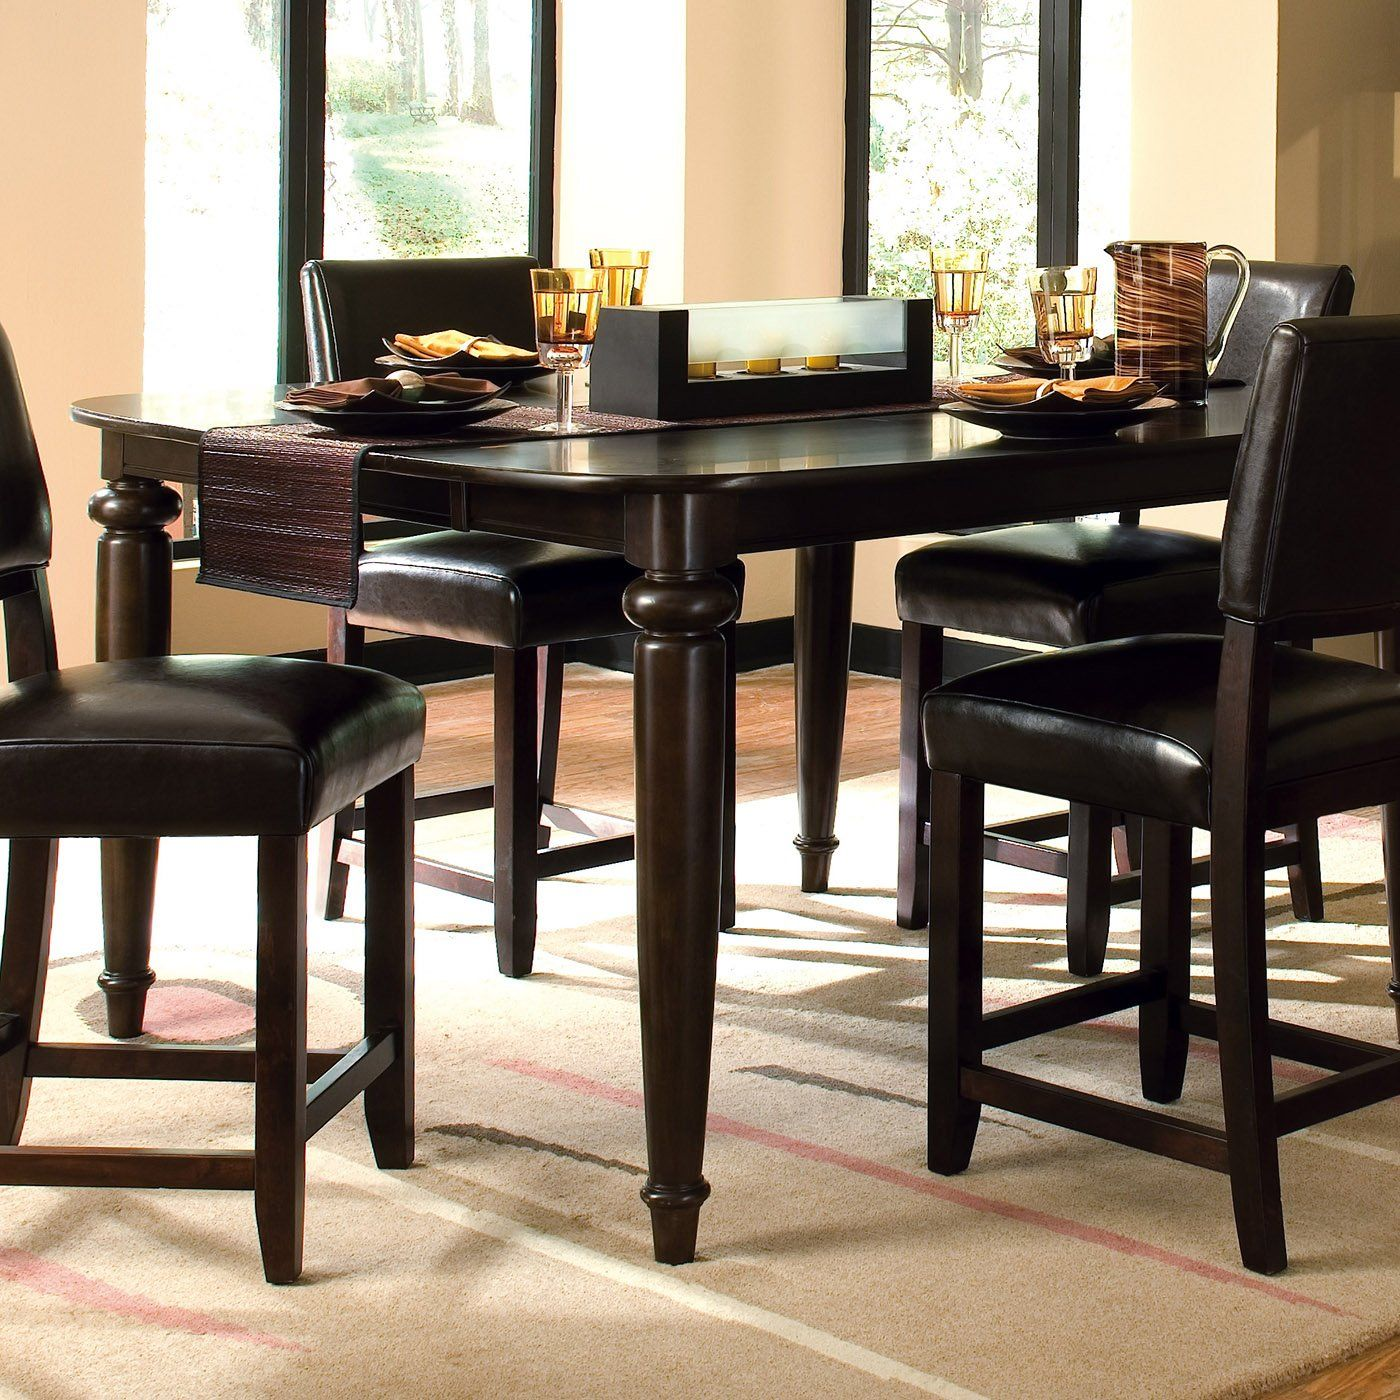 Beautiful Black High Top Kitchen Table Round Kitchen Table Set Round Kitchen Table Kitchen Table Settings